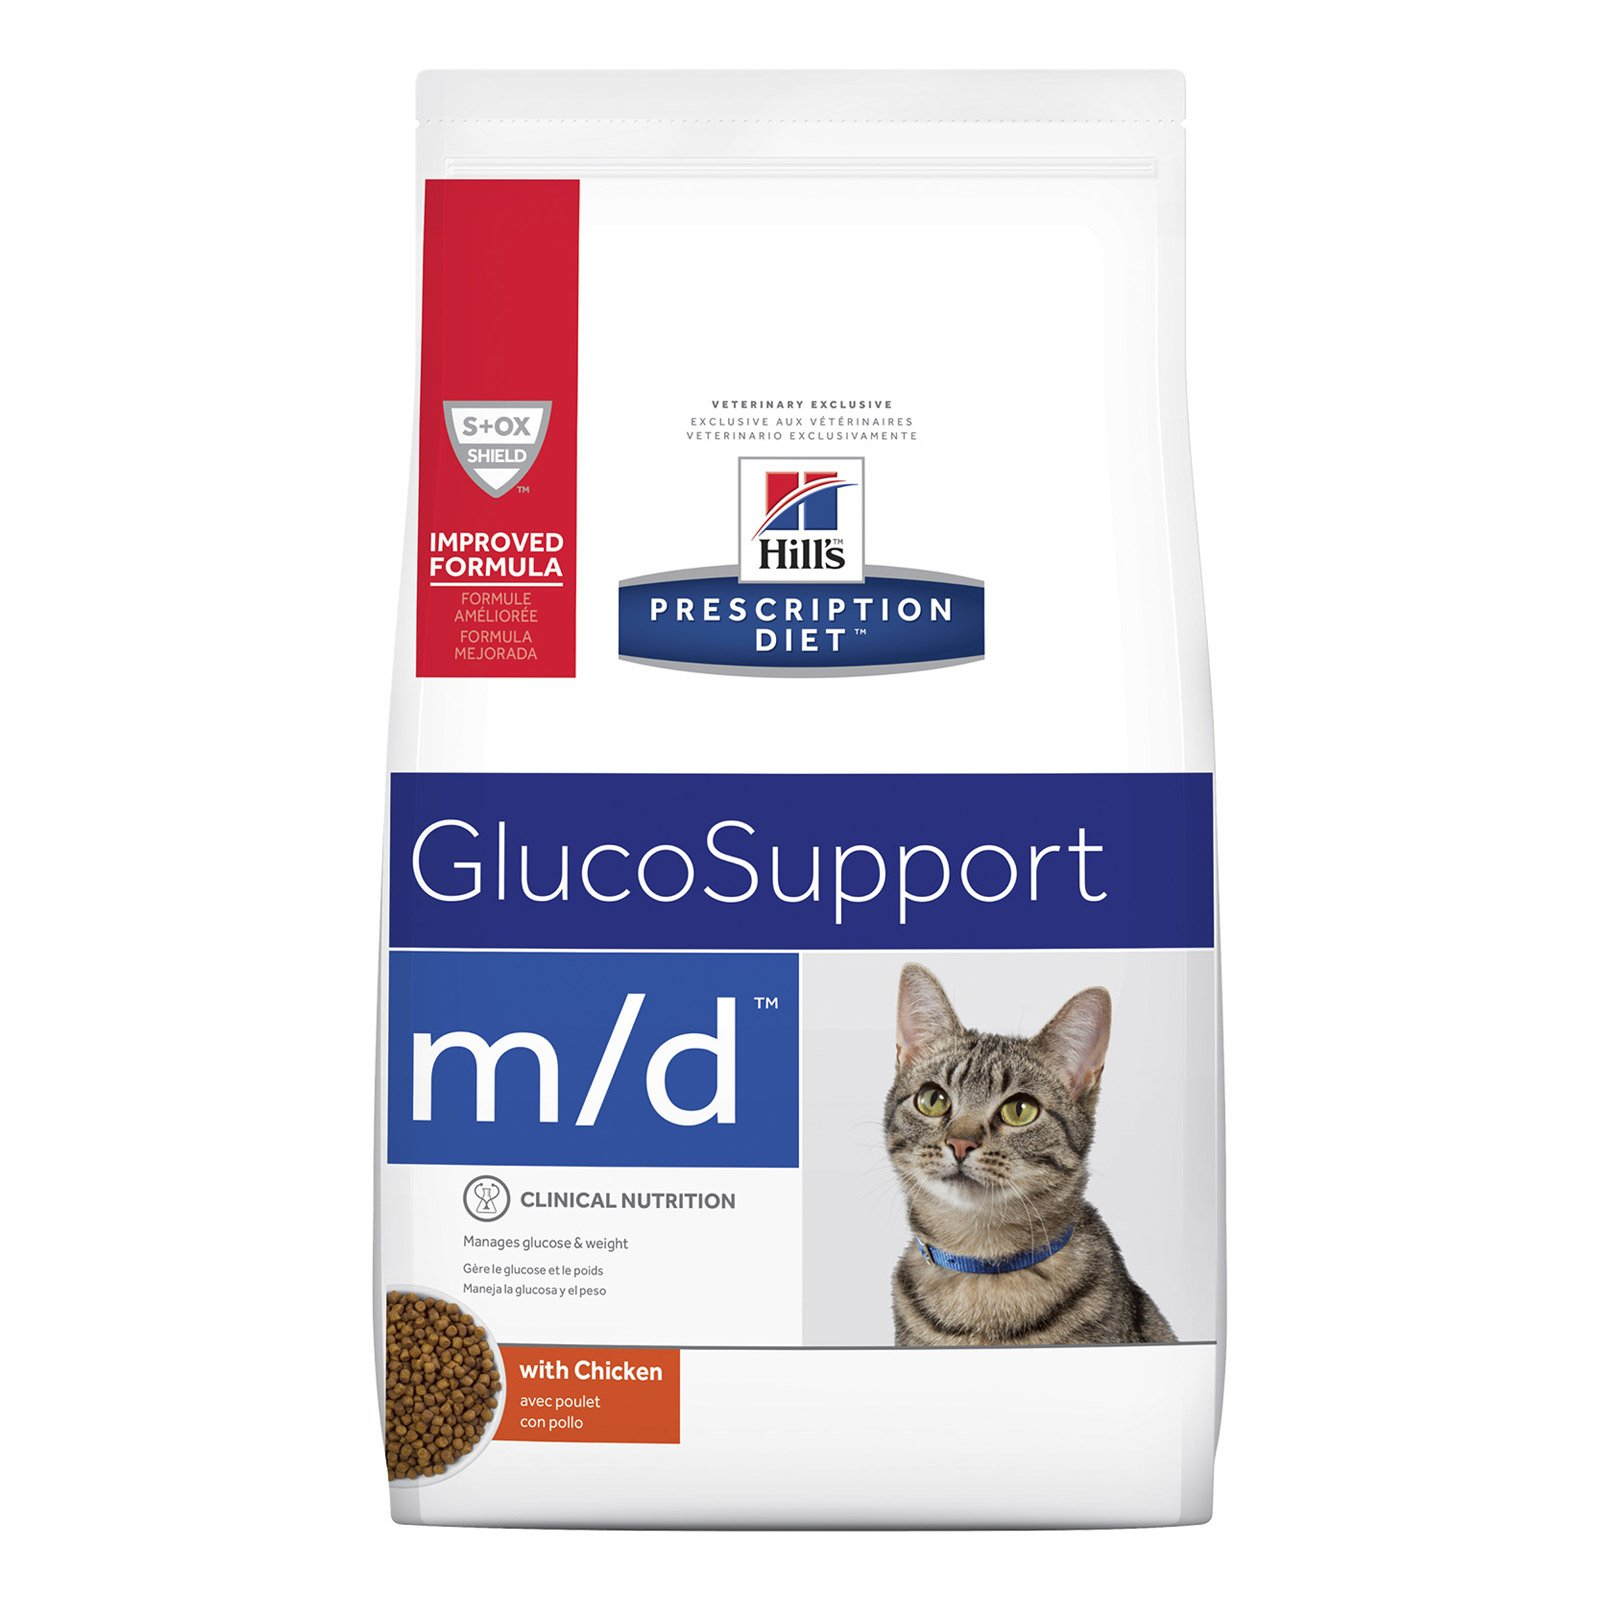 Hill's Prescription Diet m/d Glucose/Weight Management with Chicken Dry Cat Food